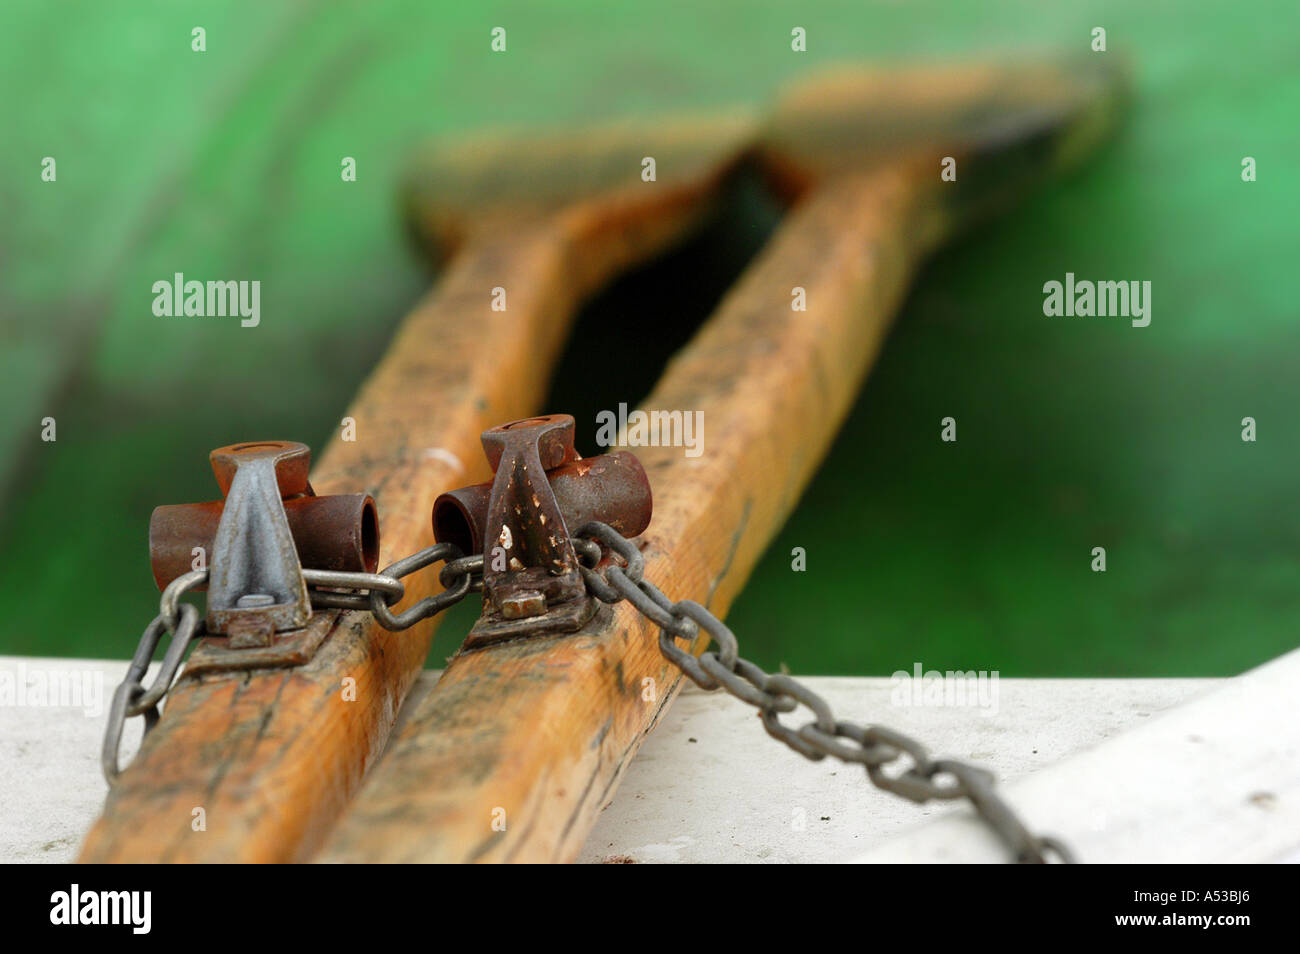 Two oars saved with a chain, partial view - Stock Image